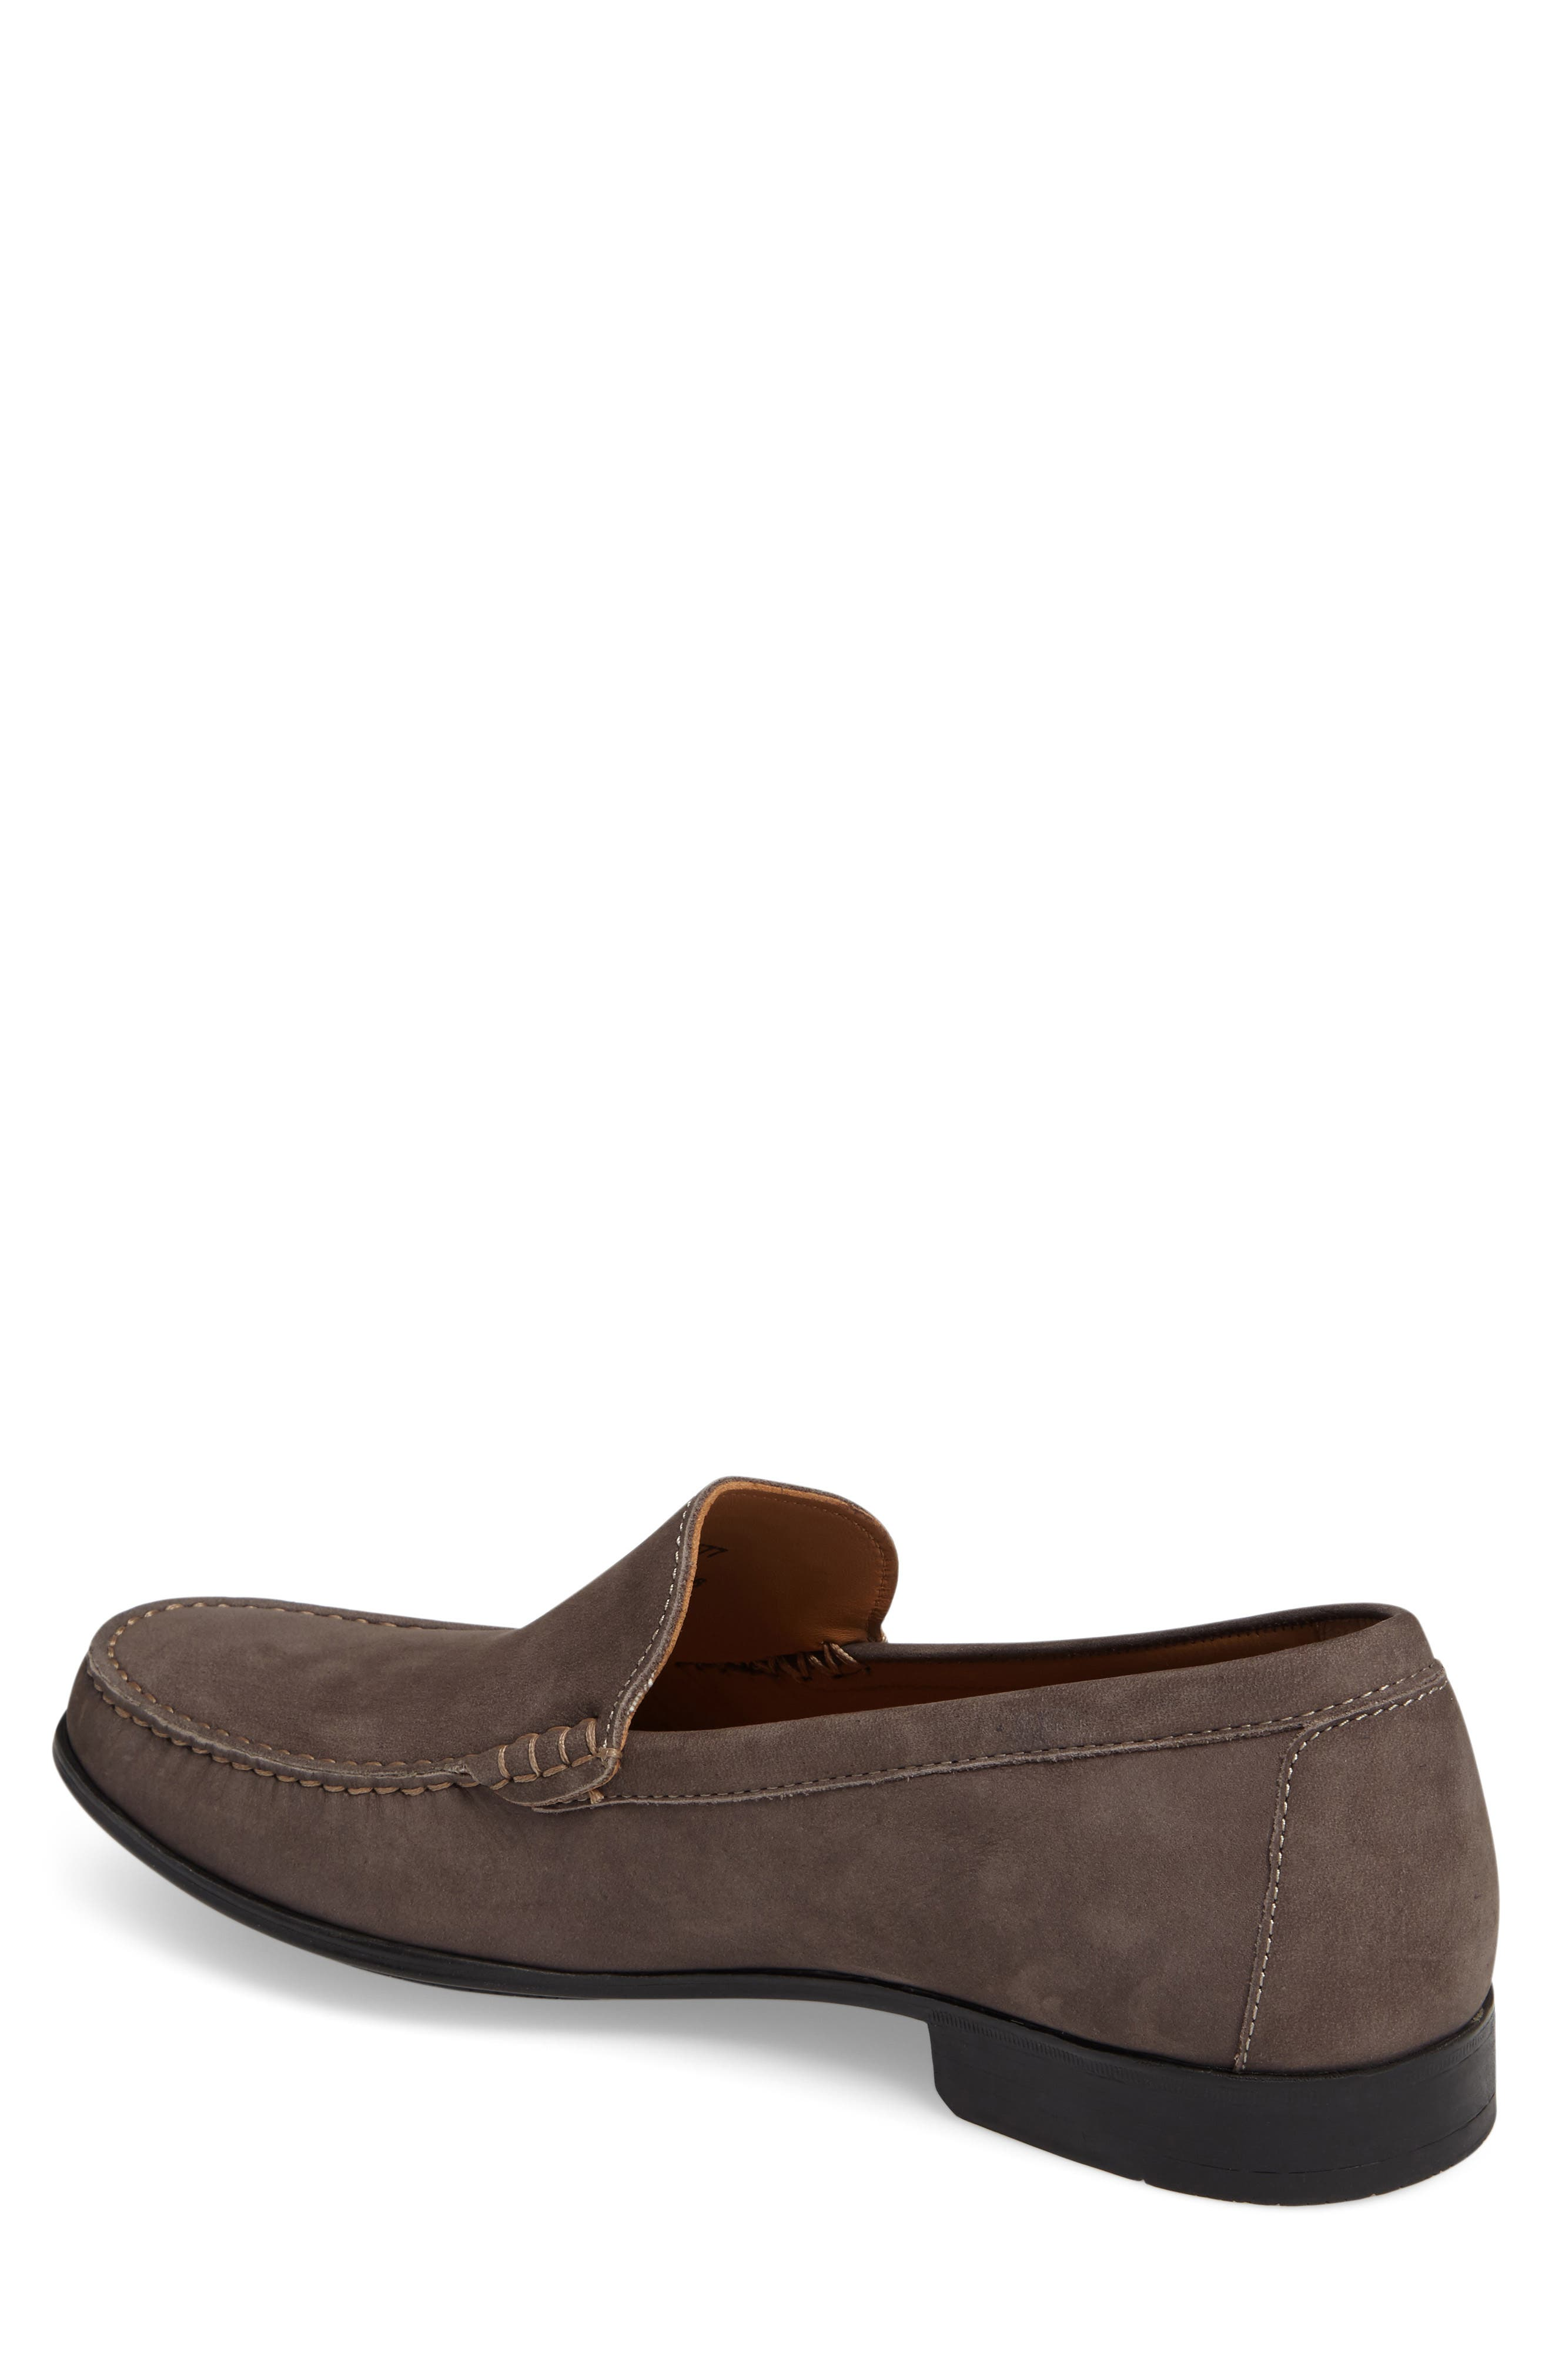 Cresswell Venetian Loafer,                             Alternate thumbnail 2, color,                             020